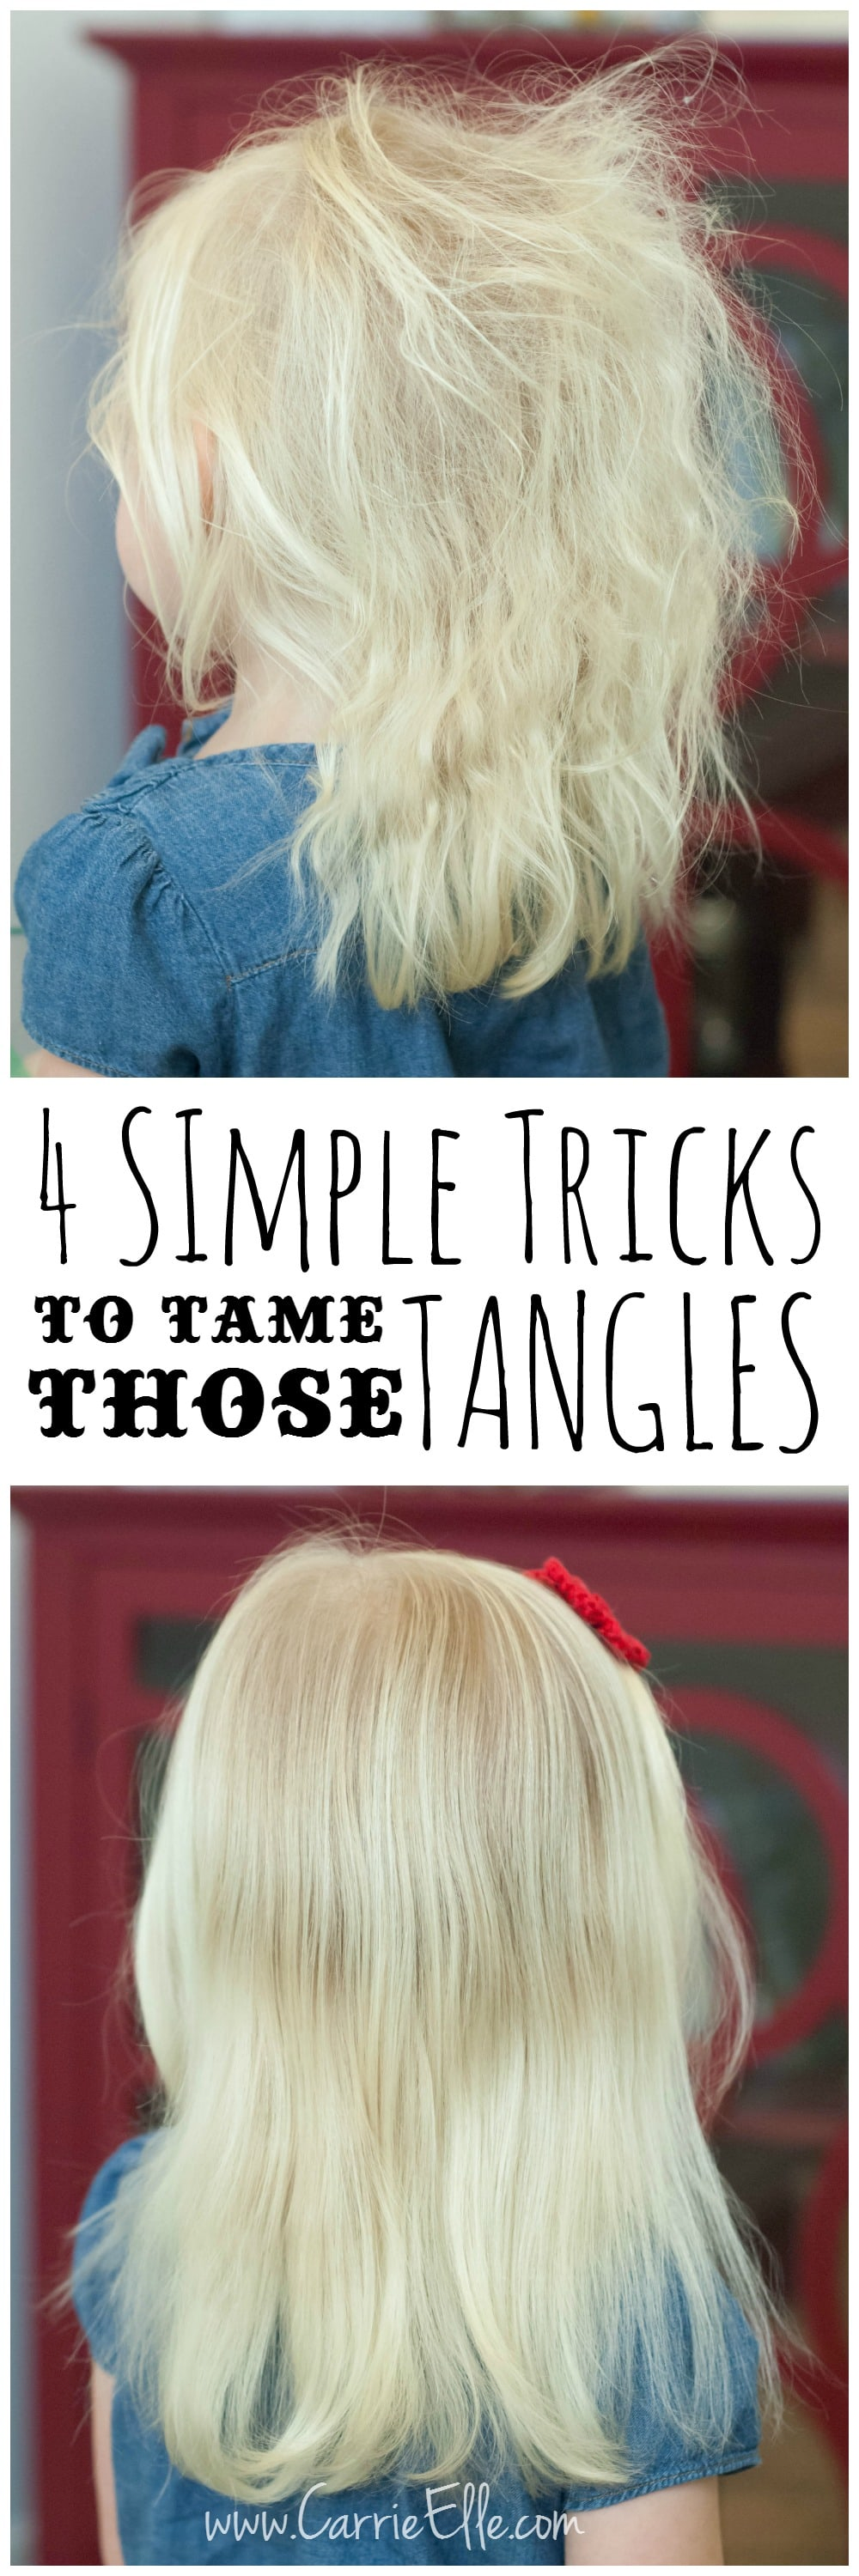 Tips for Tangles